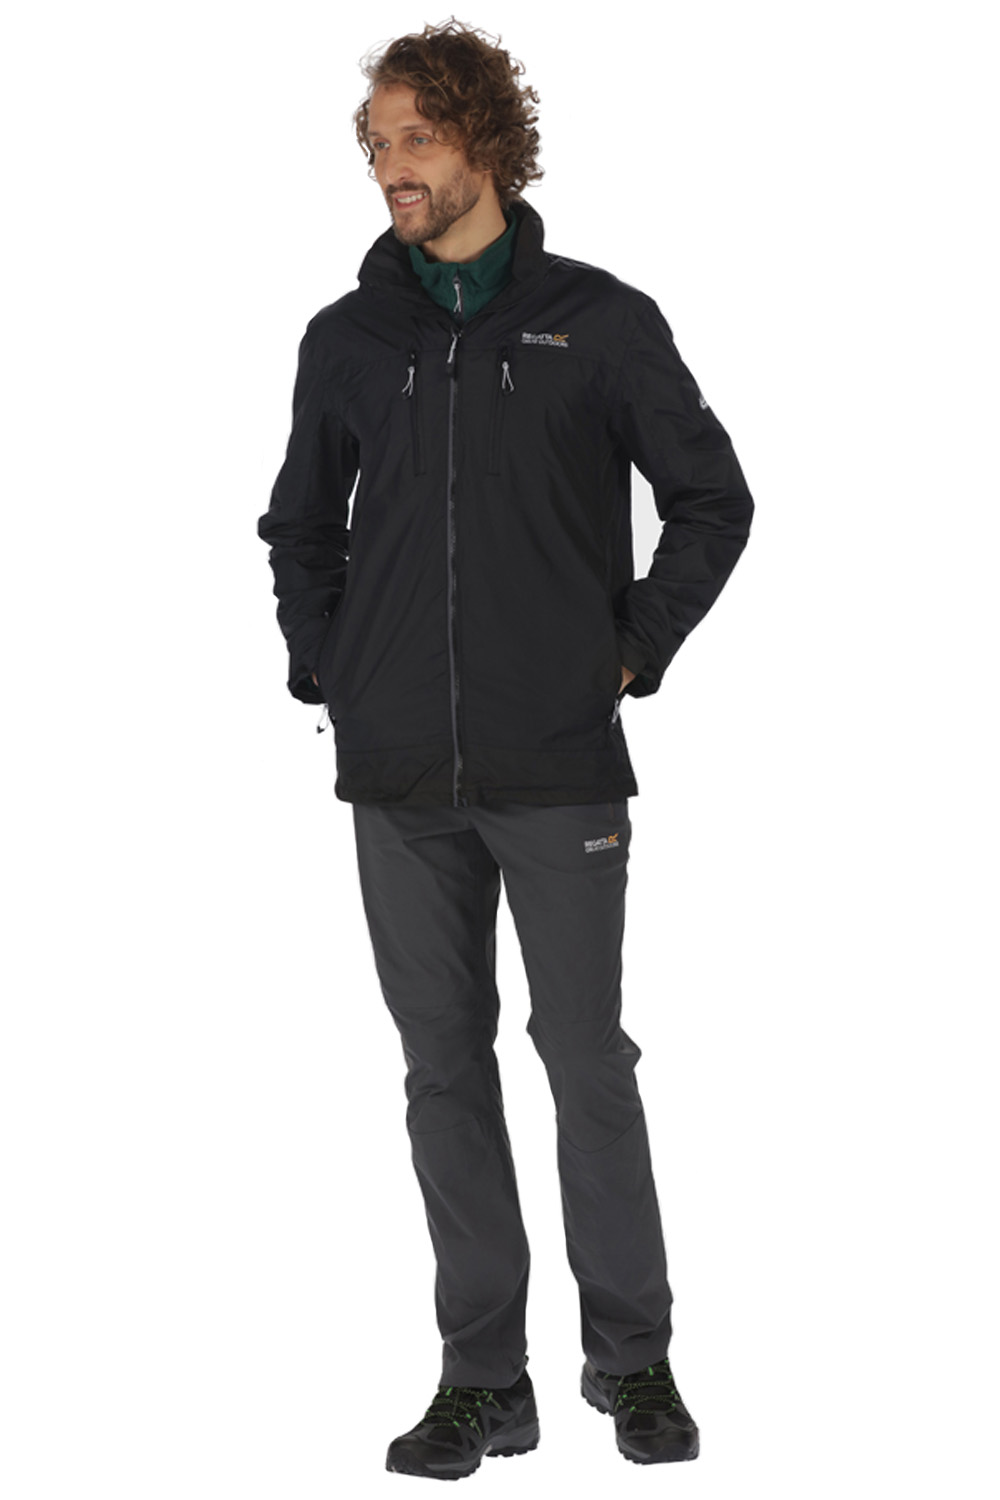 Regatta-Mens-Calderdale-II-Jacket-Waterproof-Breathable-Isotex-5000-Hooded-Coat thumbnail 4